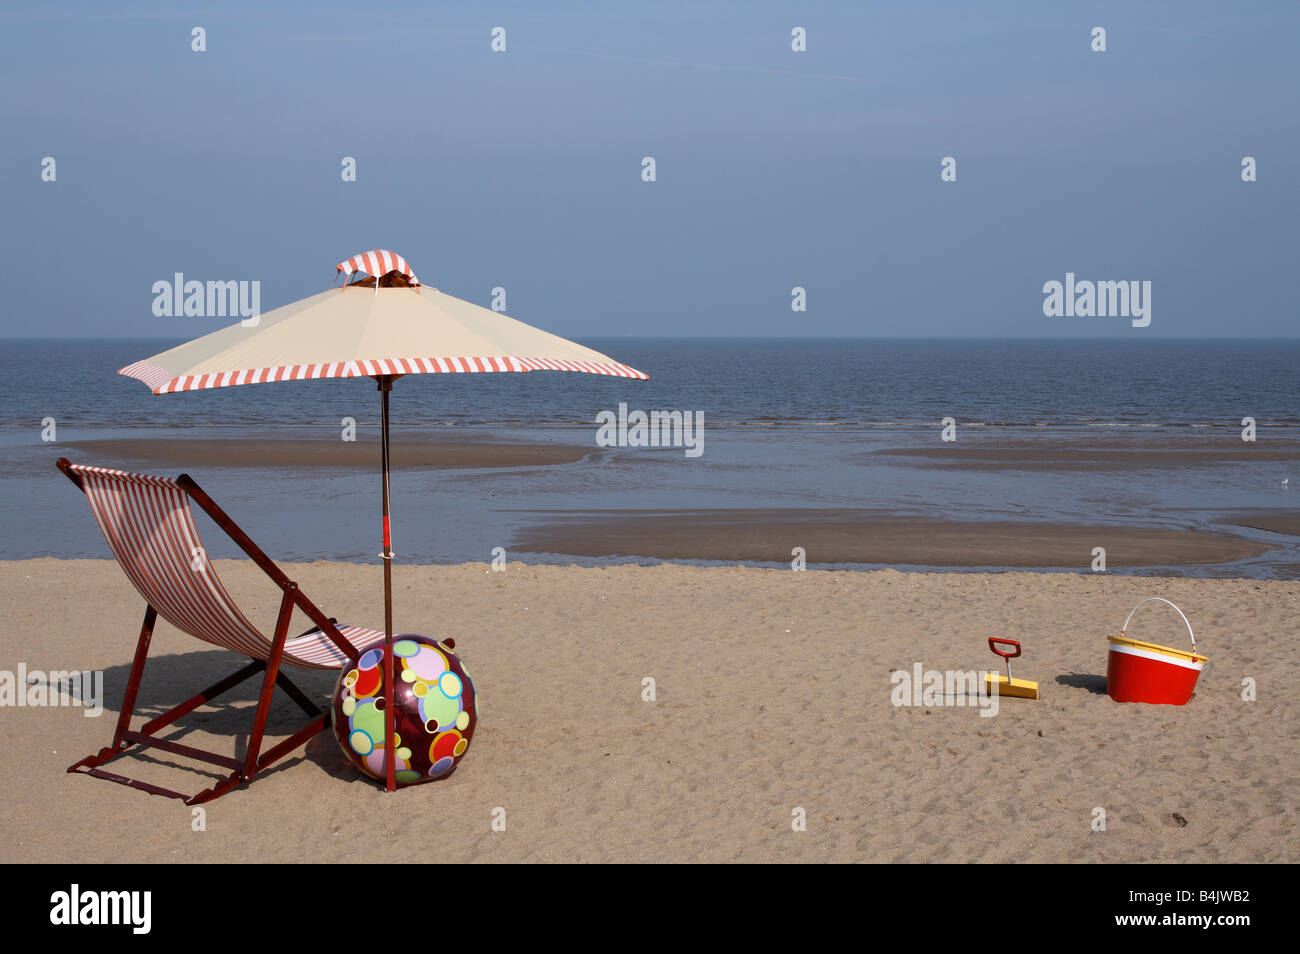 In Search of Albion, Sutton on Sea Lincolnshire, England UK - Stock Image